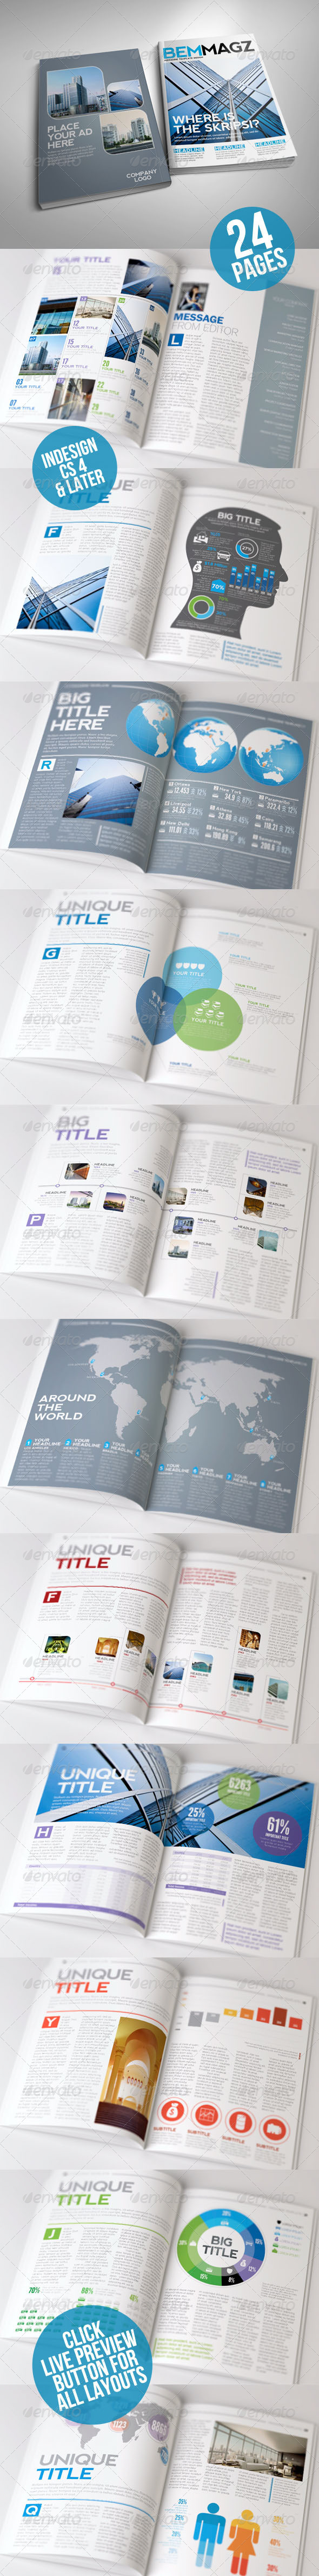 BemMagz Magazine Template with Infographics - Magazines Print Templates